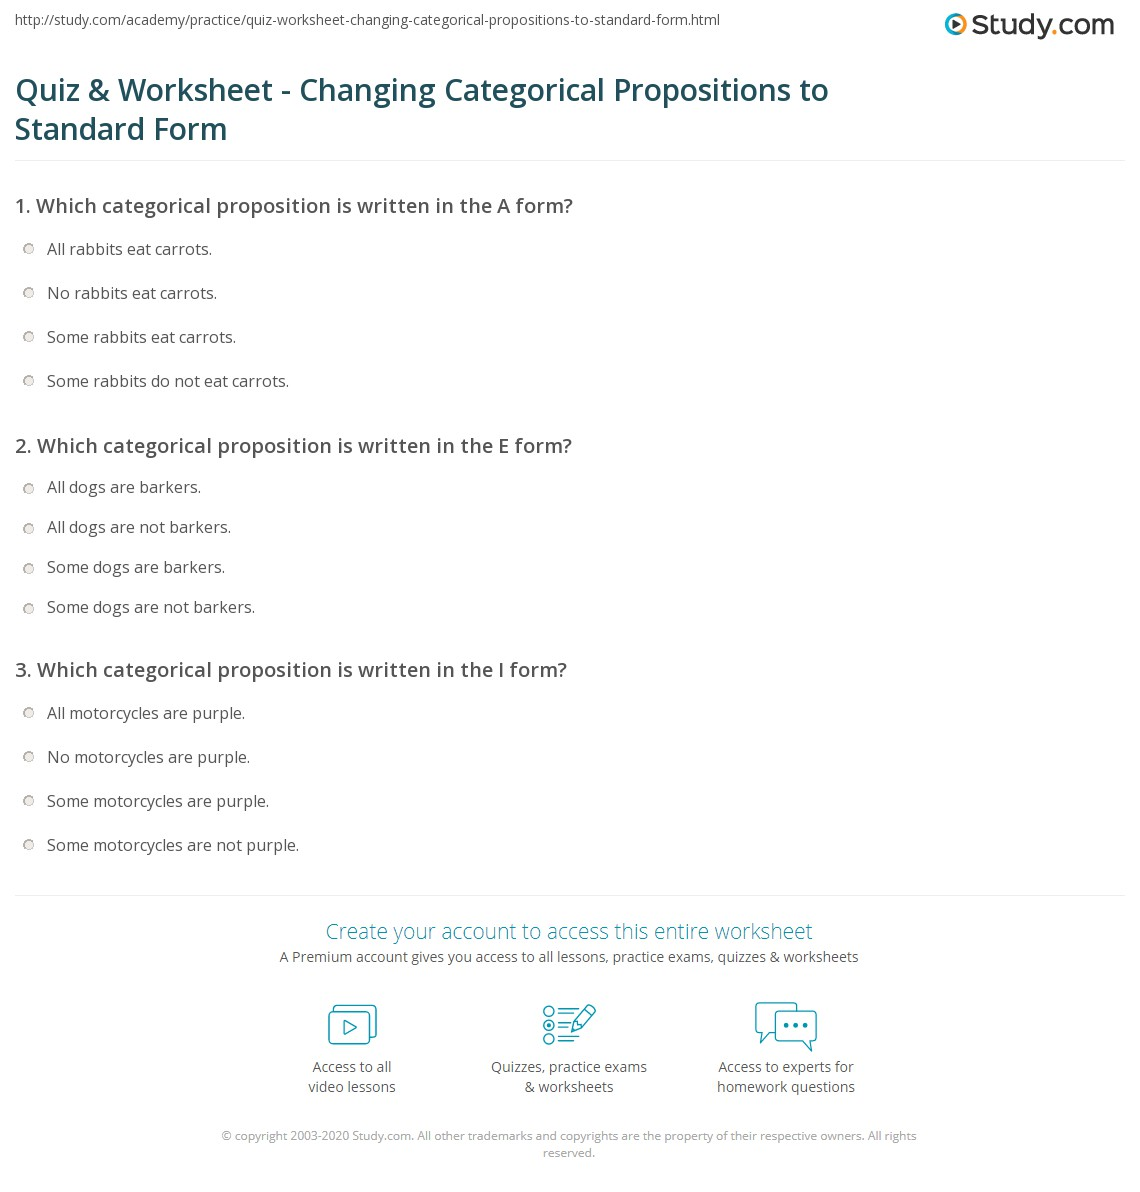 Quiz Worksheet Changing Categorical Propositions To Standard